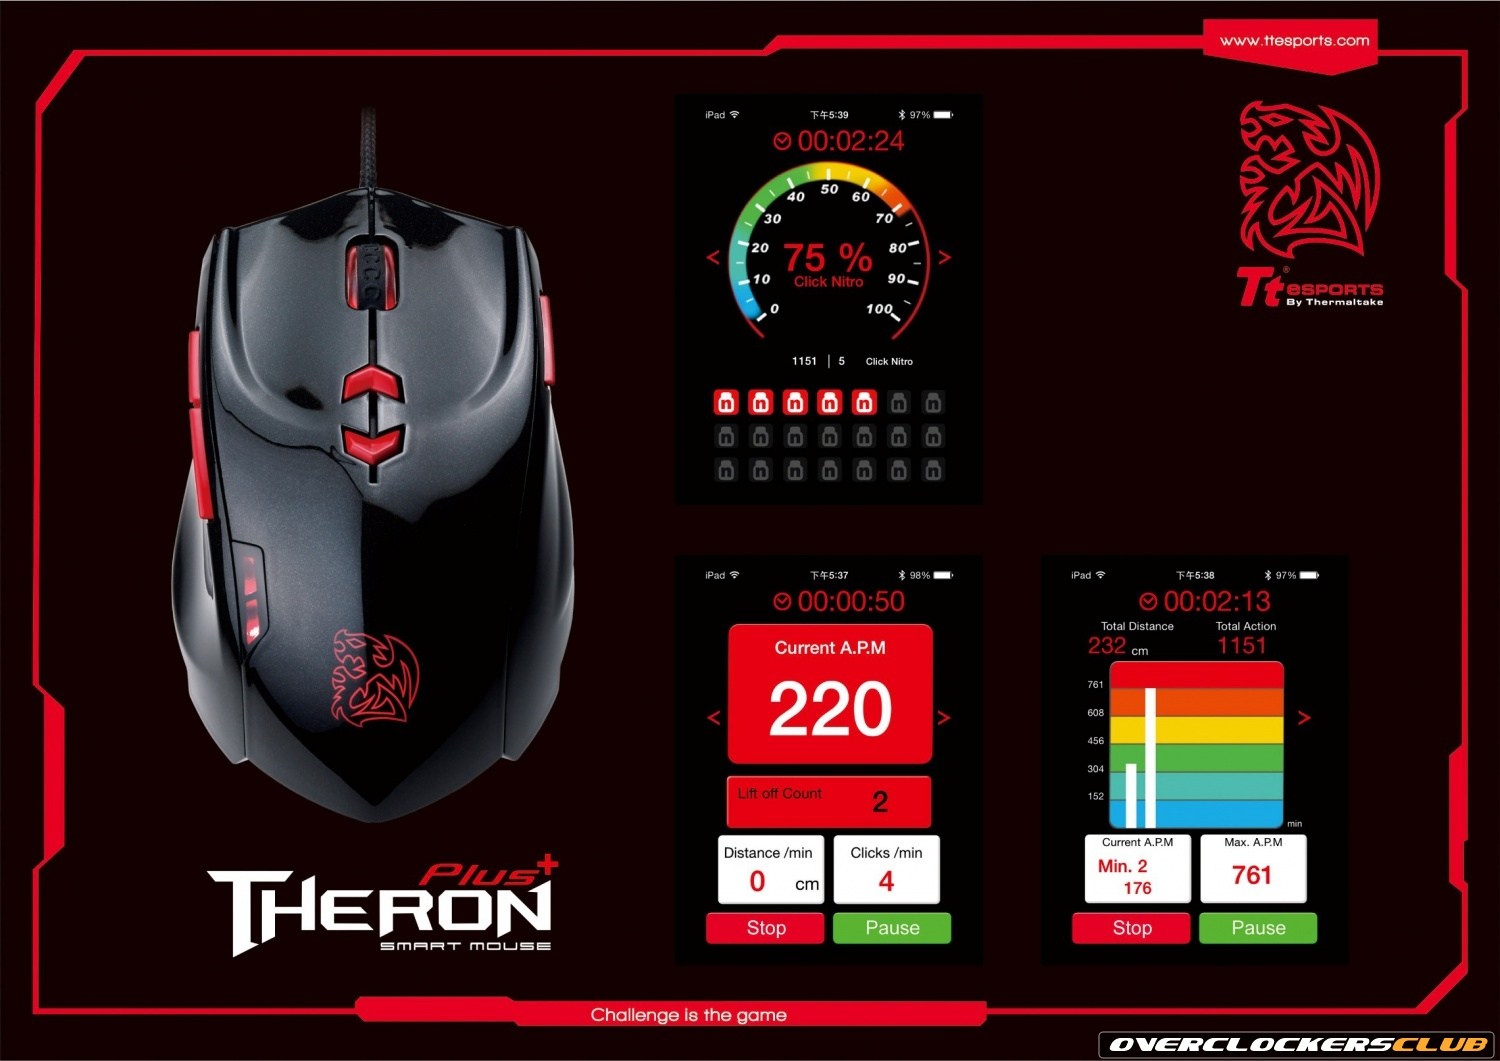 Tt eSPORTS Introduces Several New Products at Computex, Highlighted by the New THERON Plus Smart Mouse